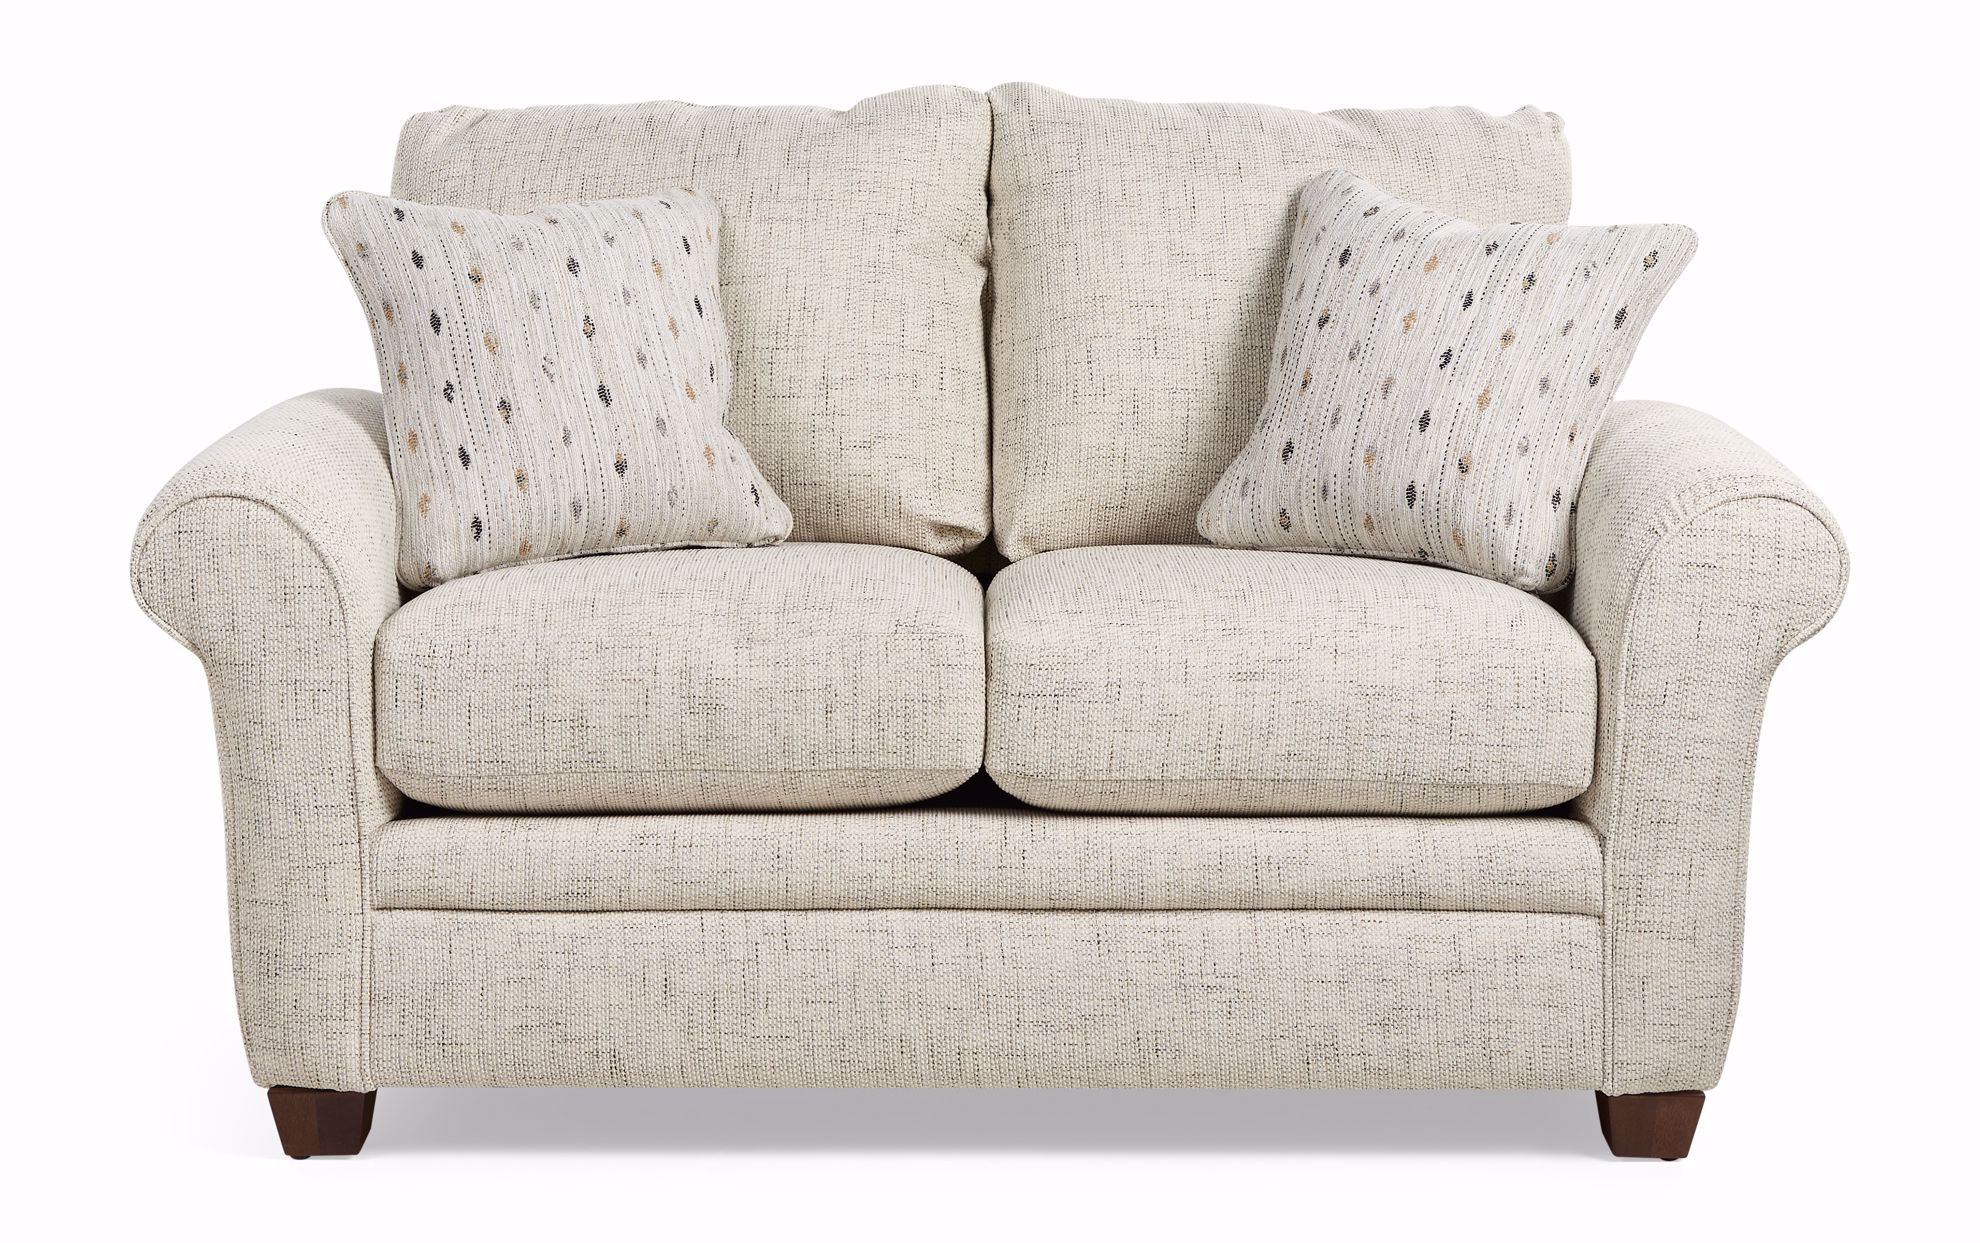 Picture of Natalie Oyster Loveseat